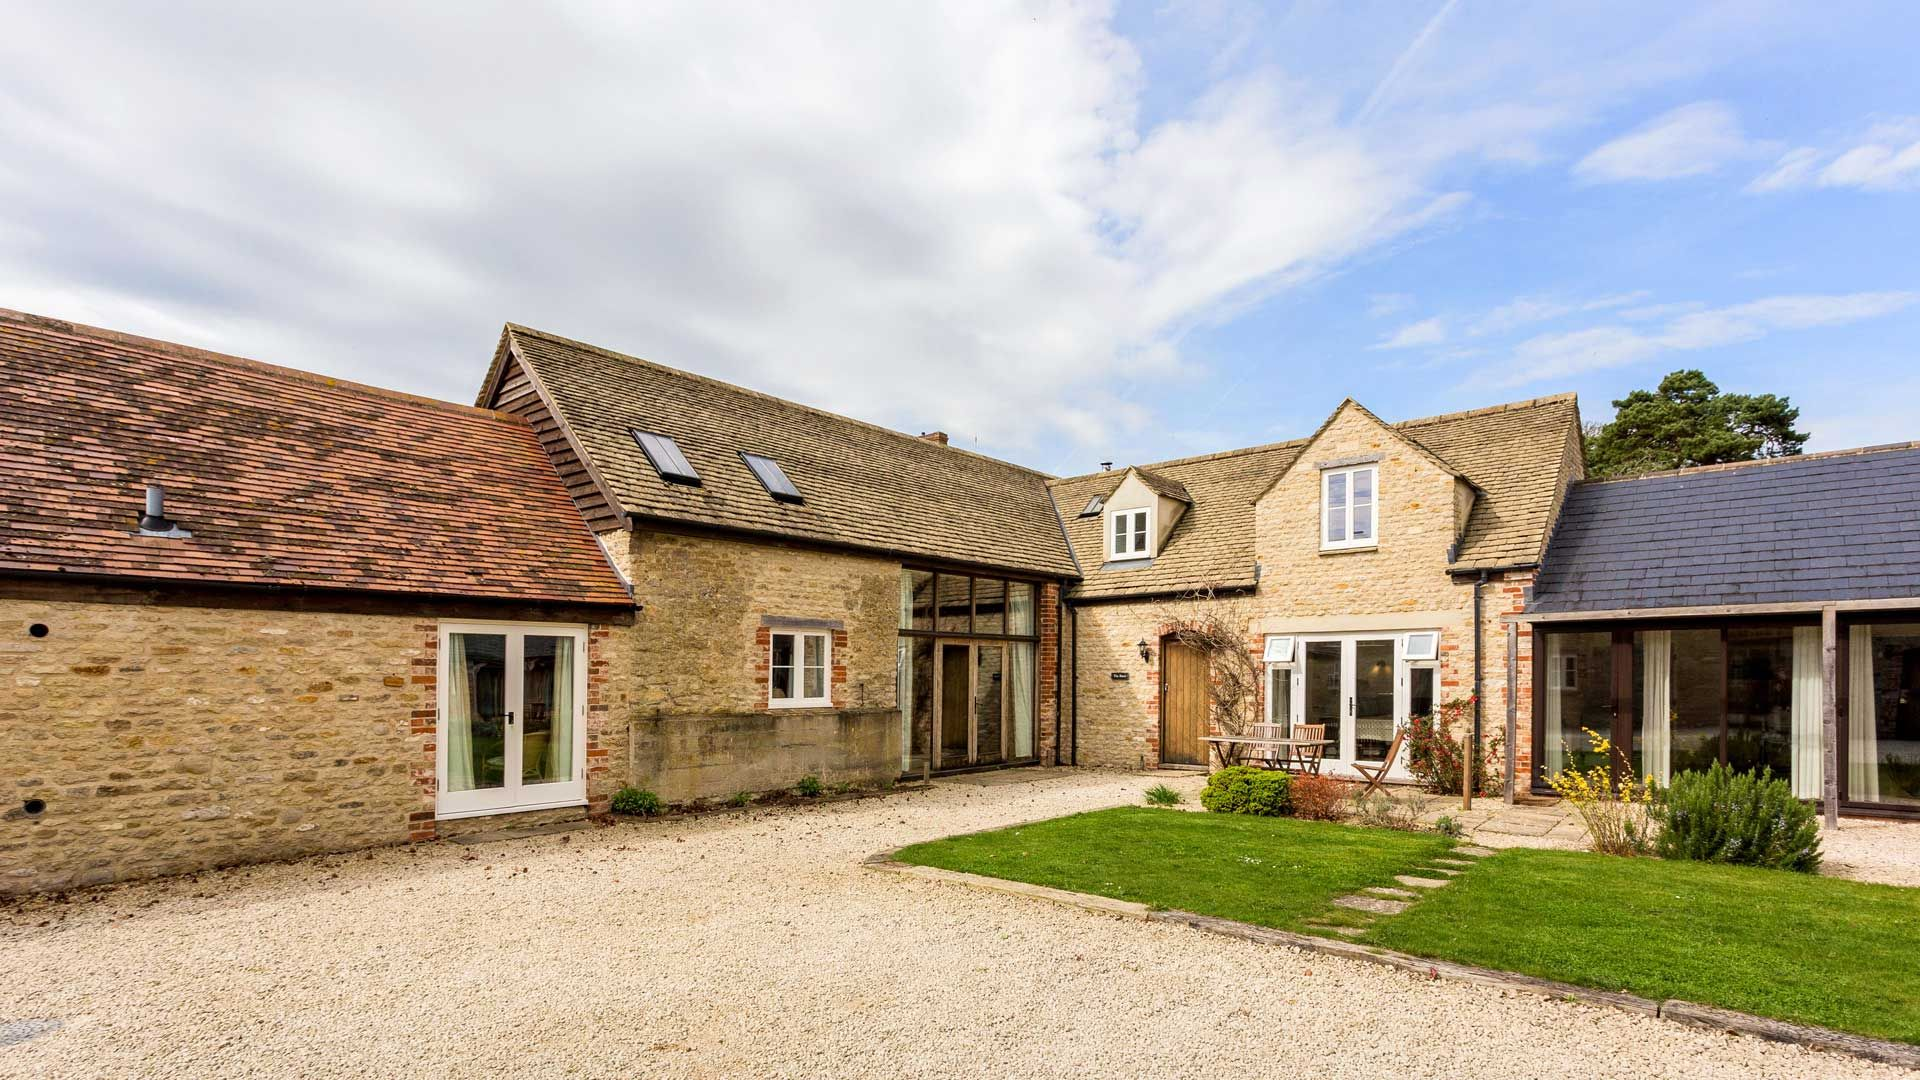 The Barn - StayCotswold